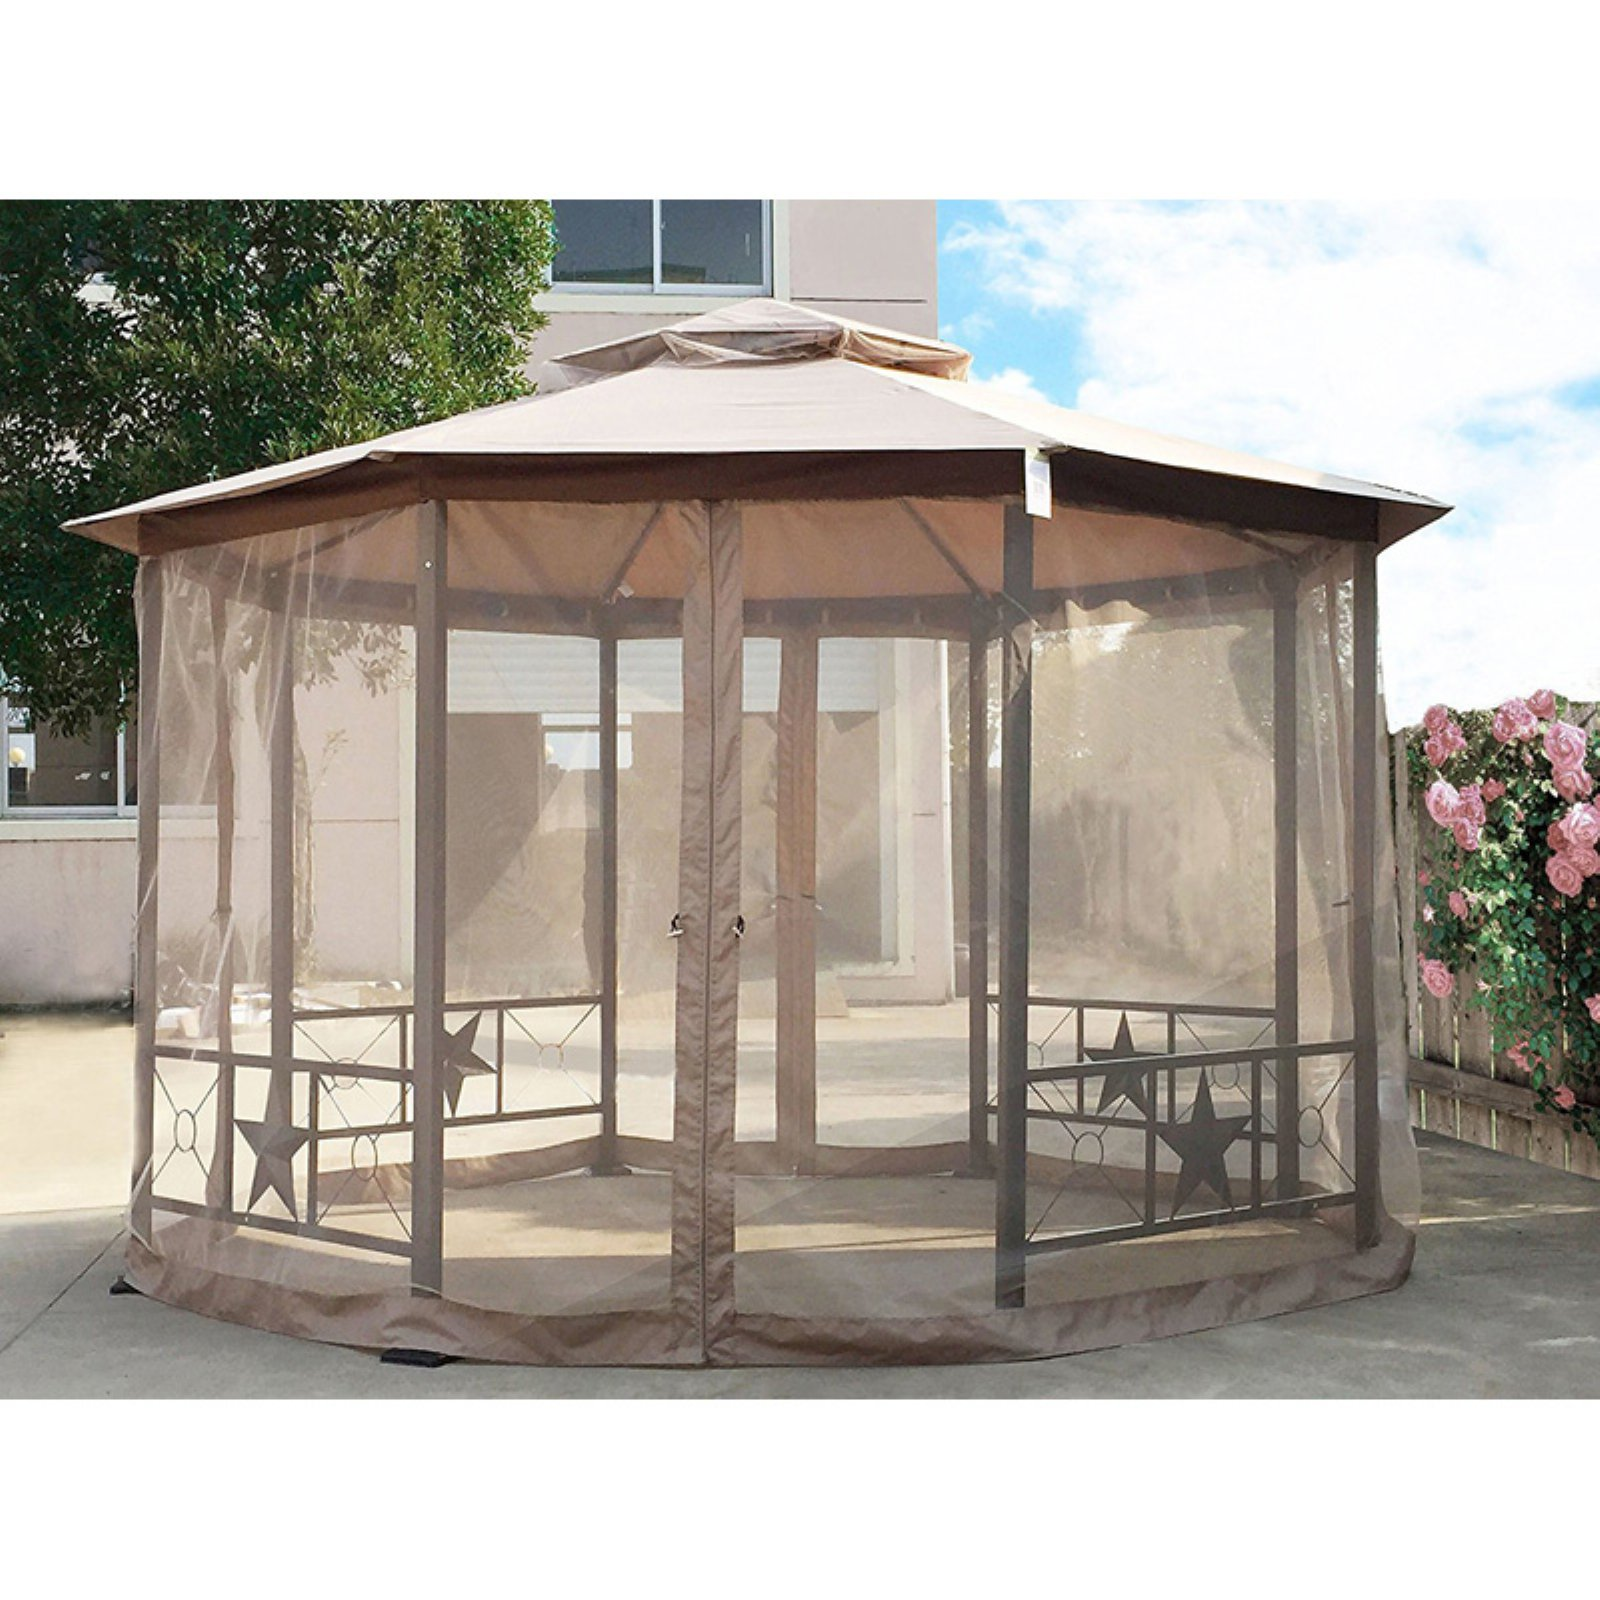 Cloud Mountain 12 ft. Round Double Roof Vented Gazebo Canopy with Mosquito Netting by Cloud Mountain